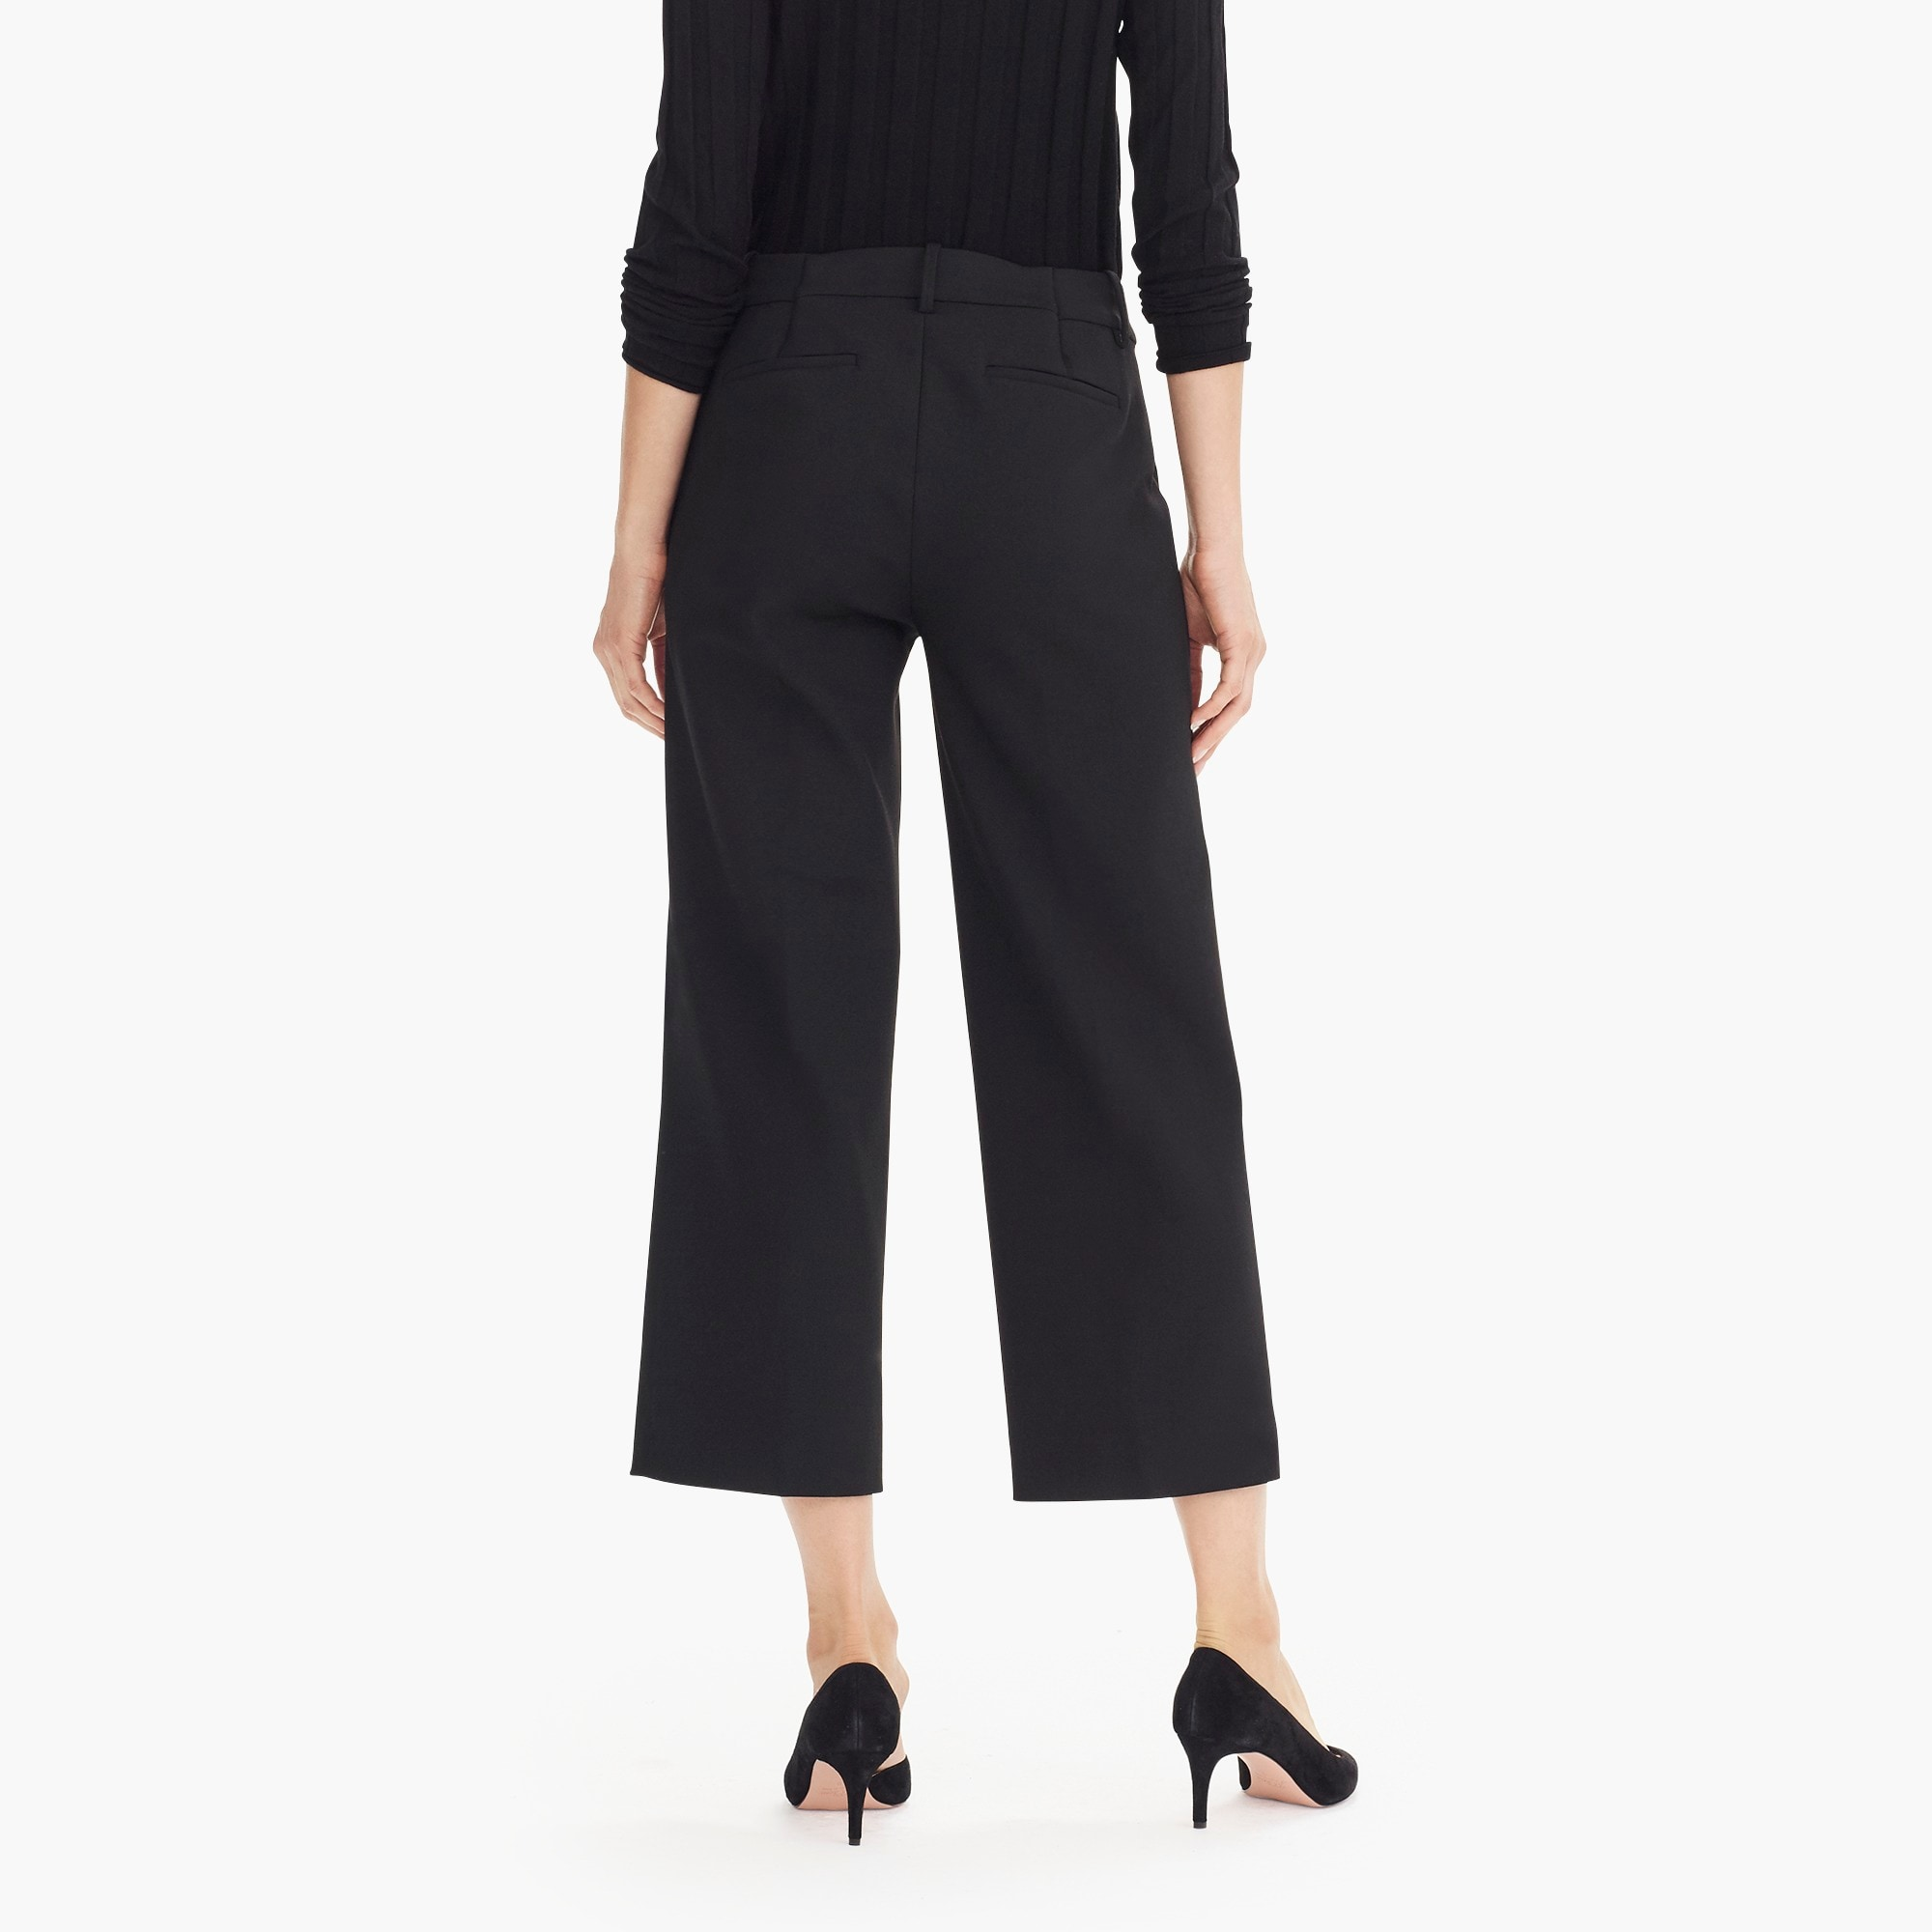 Image 6 for High-rise Peyton wide-leg pant in four-season stretch